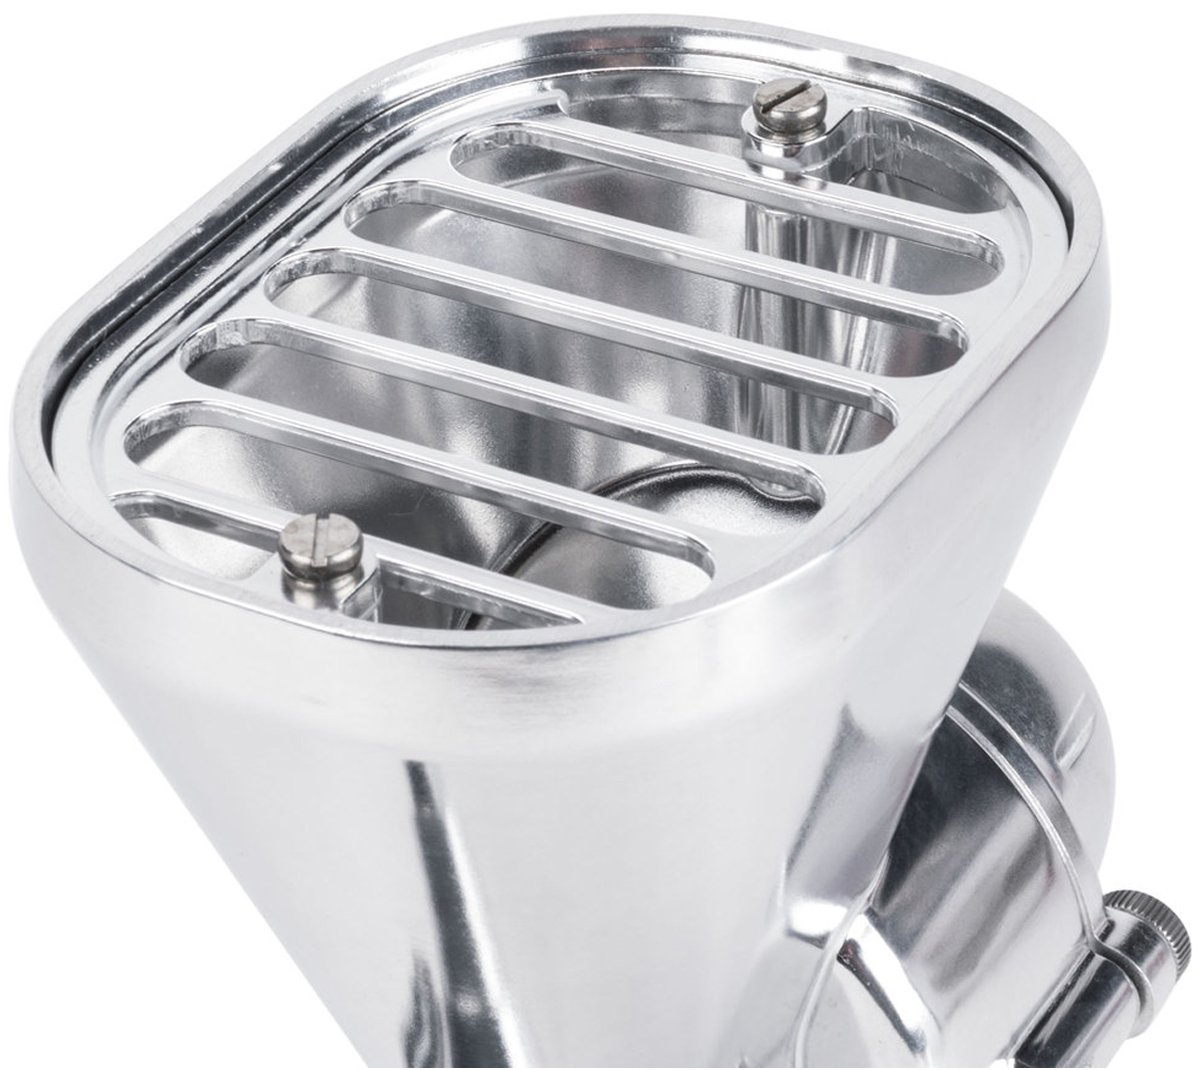 KitchenAid KGM All Metal Grain Mill Attachment | Appliances Online on blendtec grain mill, vitamix grain mill, magic mill grain mill, food grinder grain mill, family grain mill, cuisinart food mill, motorized grain mill, chinese grain mill, hobart grain mill, country grain mill, bosch grain mill,